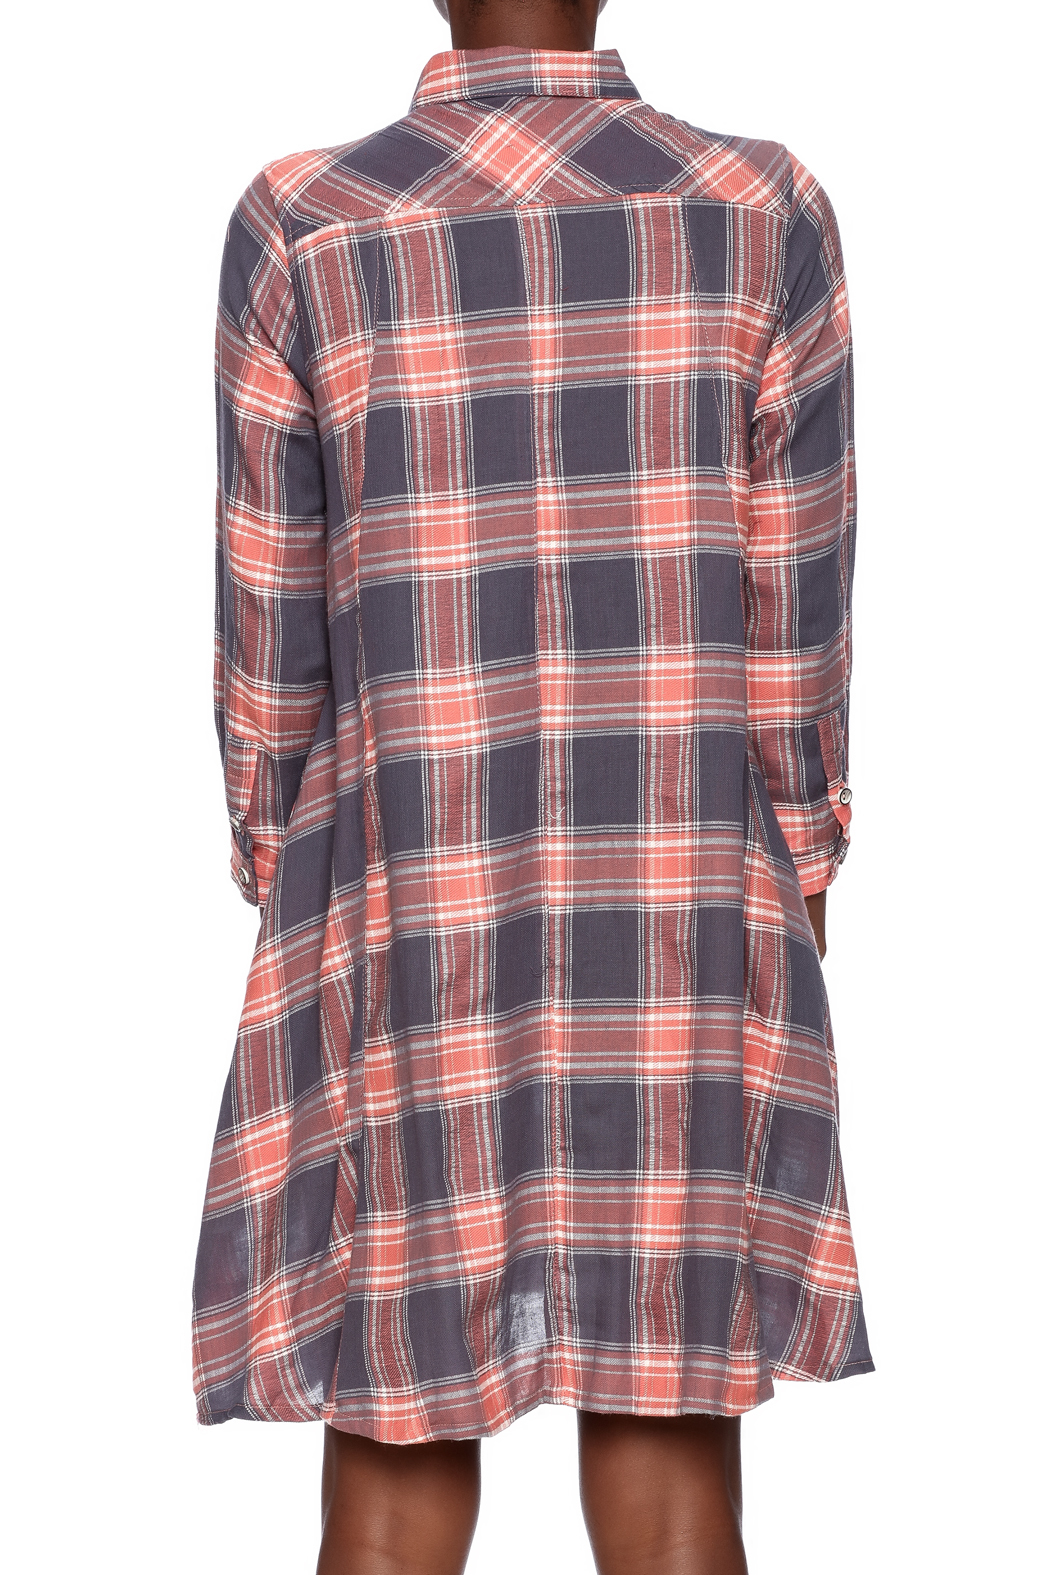 NU New York Button Down Plaid Dress - Back Cropped Image